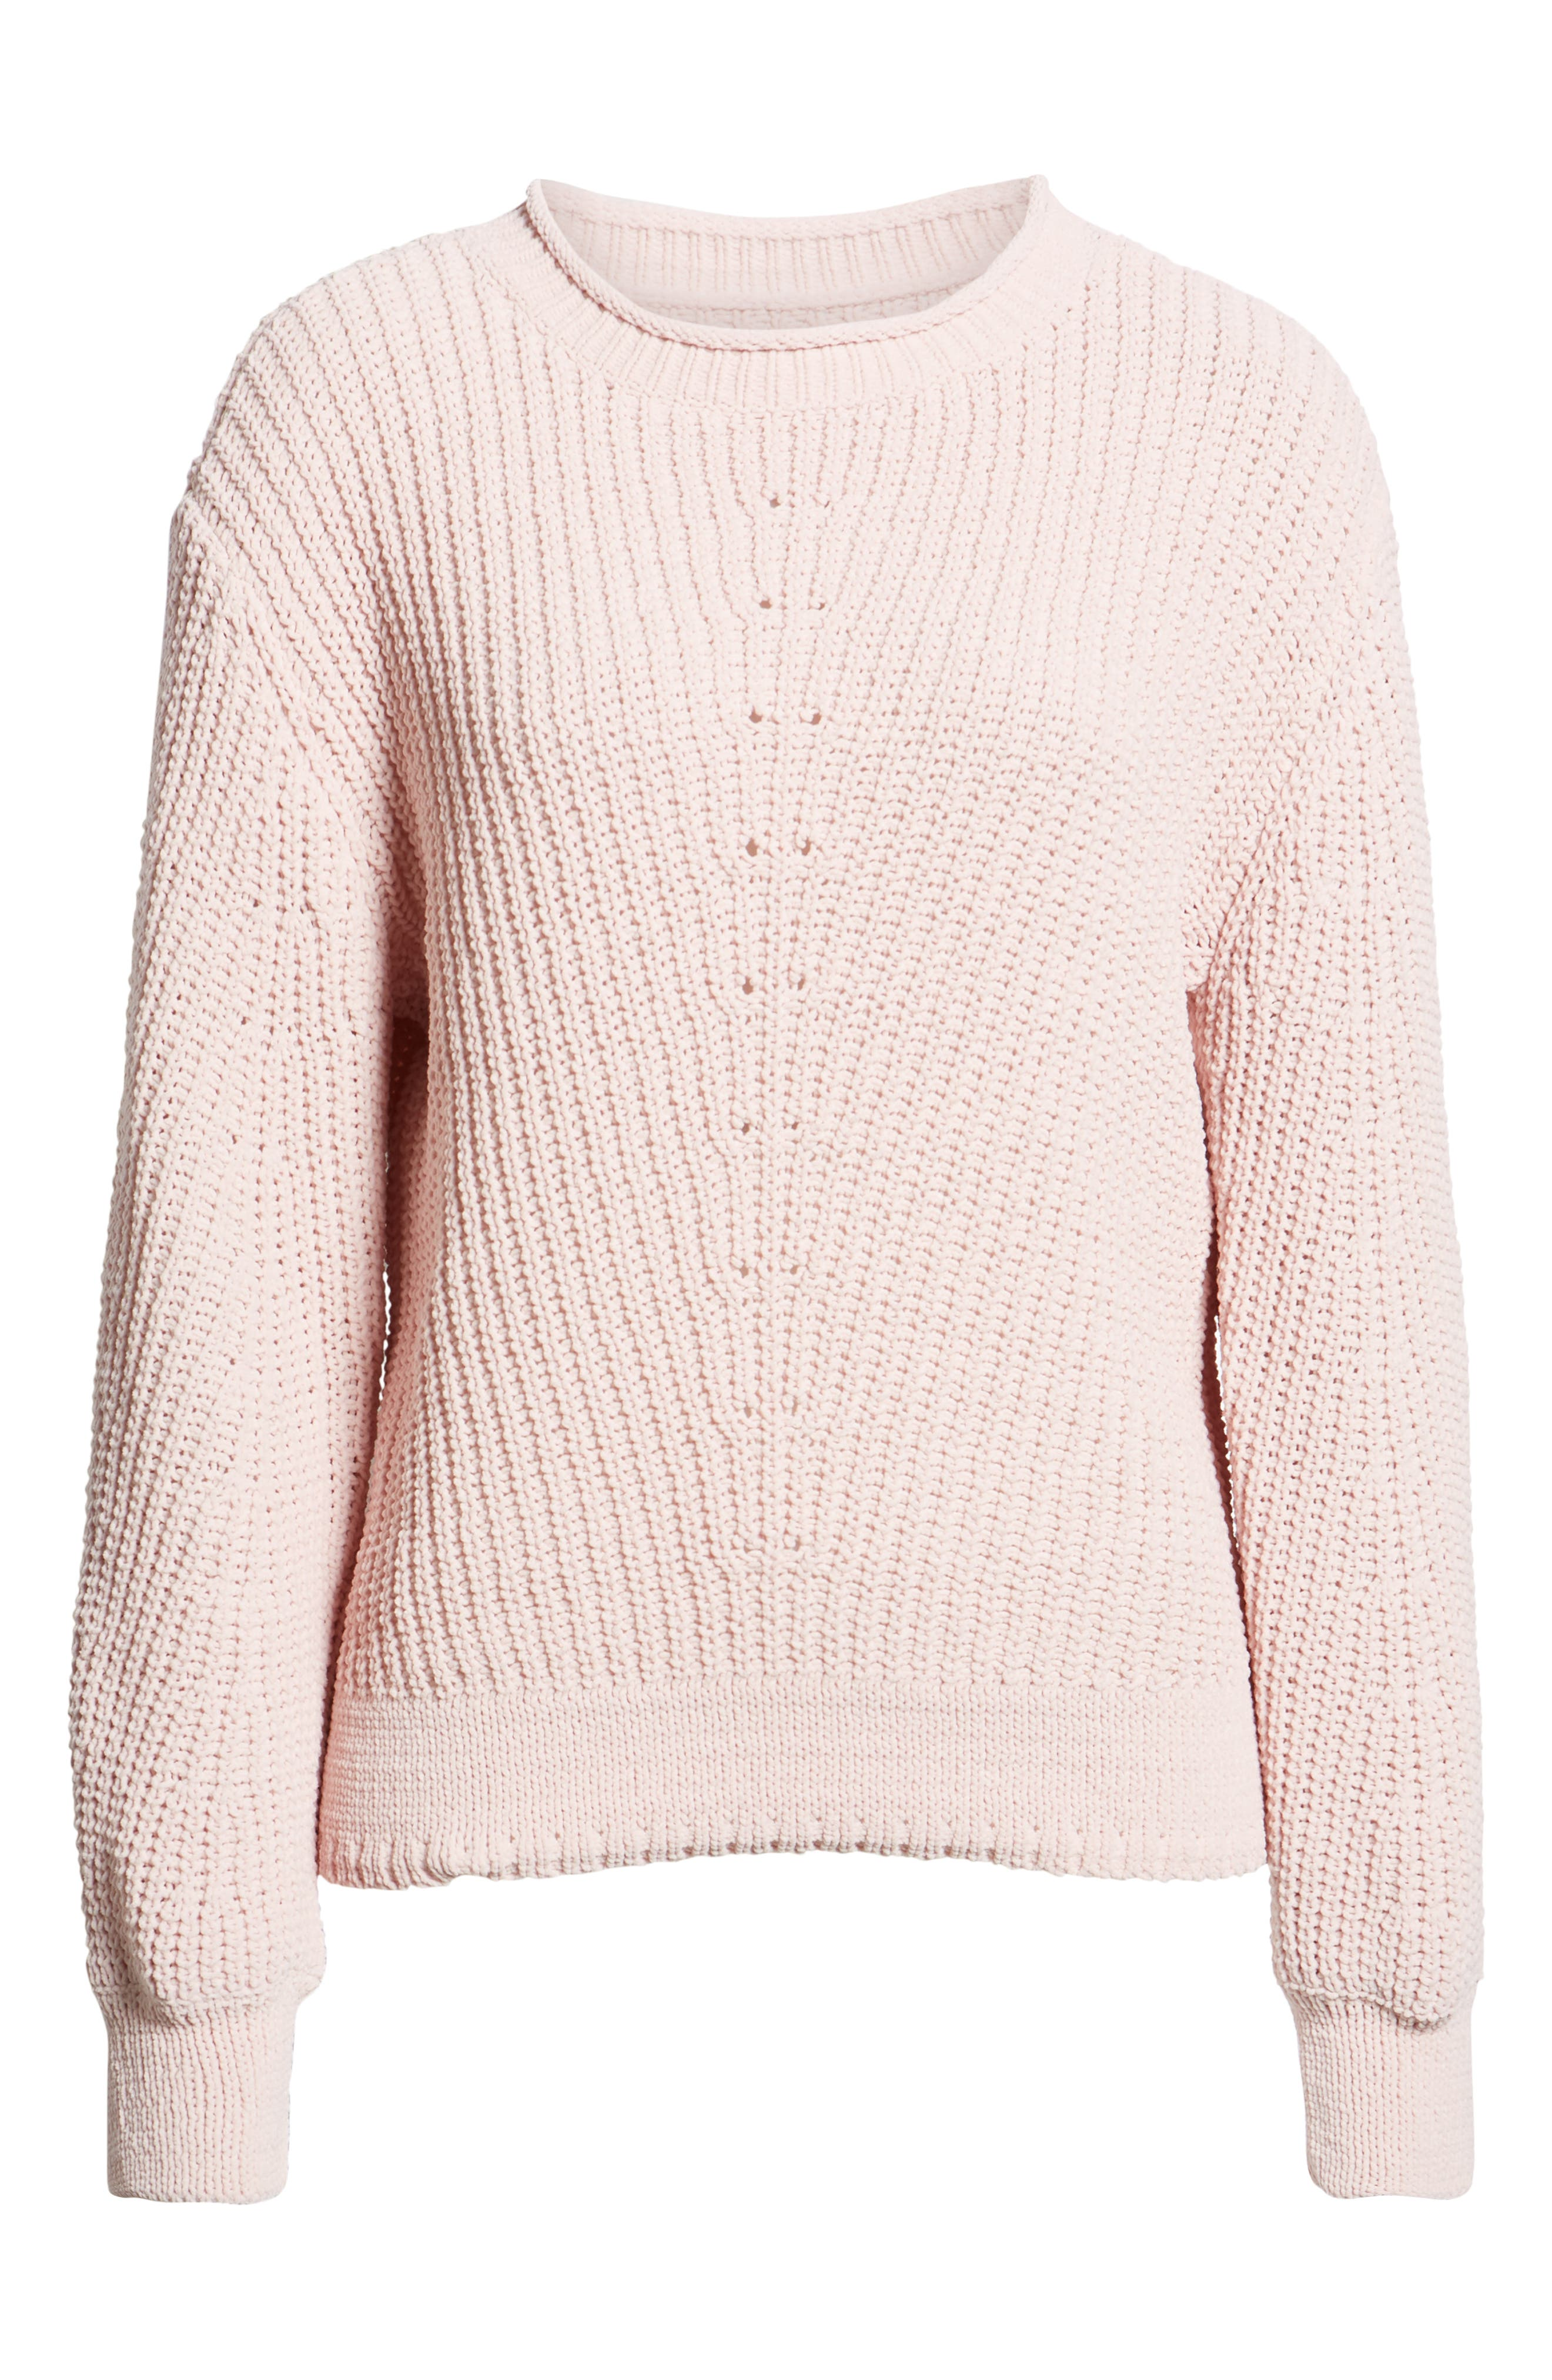 Chenille Crewneck Sweater,                             Alternate thumbnail 6, color,                             PINK SEPIA